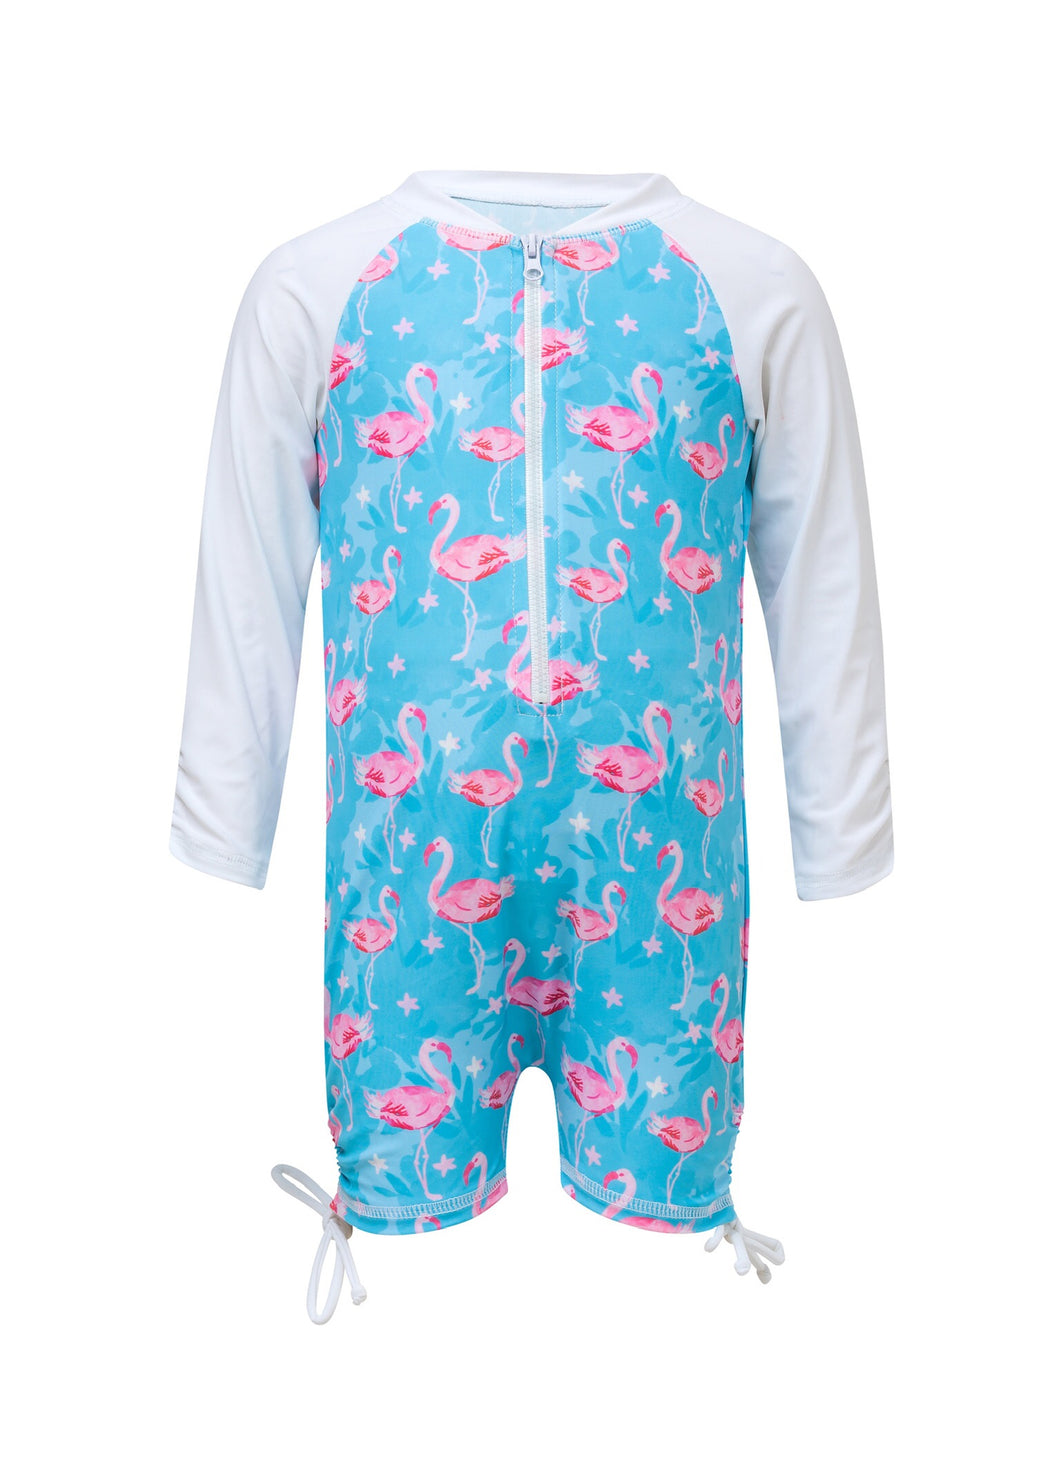 Snapper Rock Blue Flamingo Long-Sleeve Sunsuit